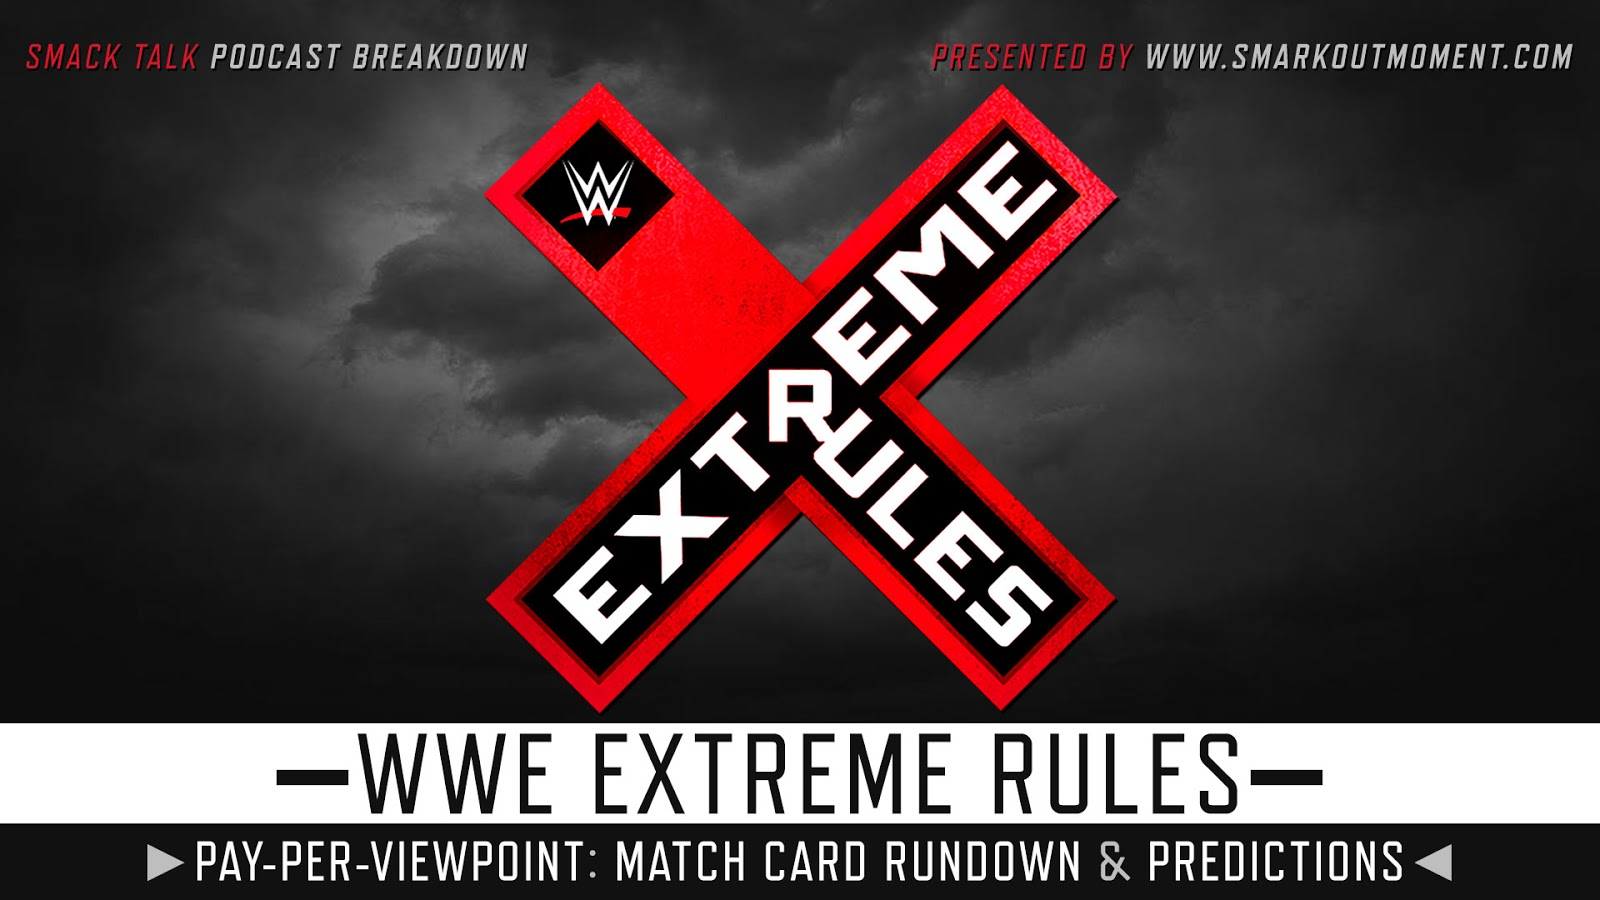 WWE Extreme Rules 2019 spoilers podcast